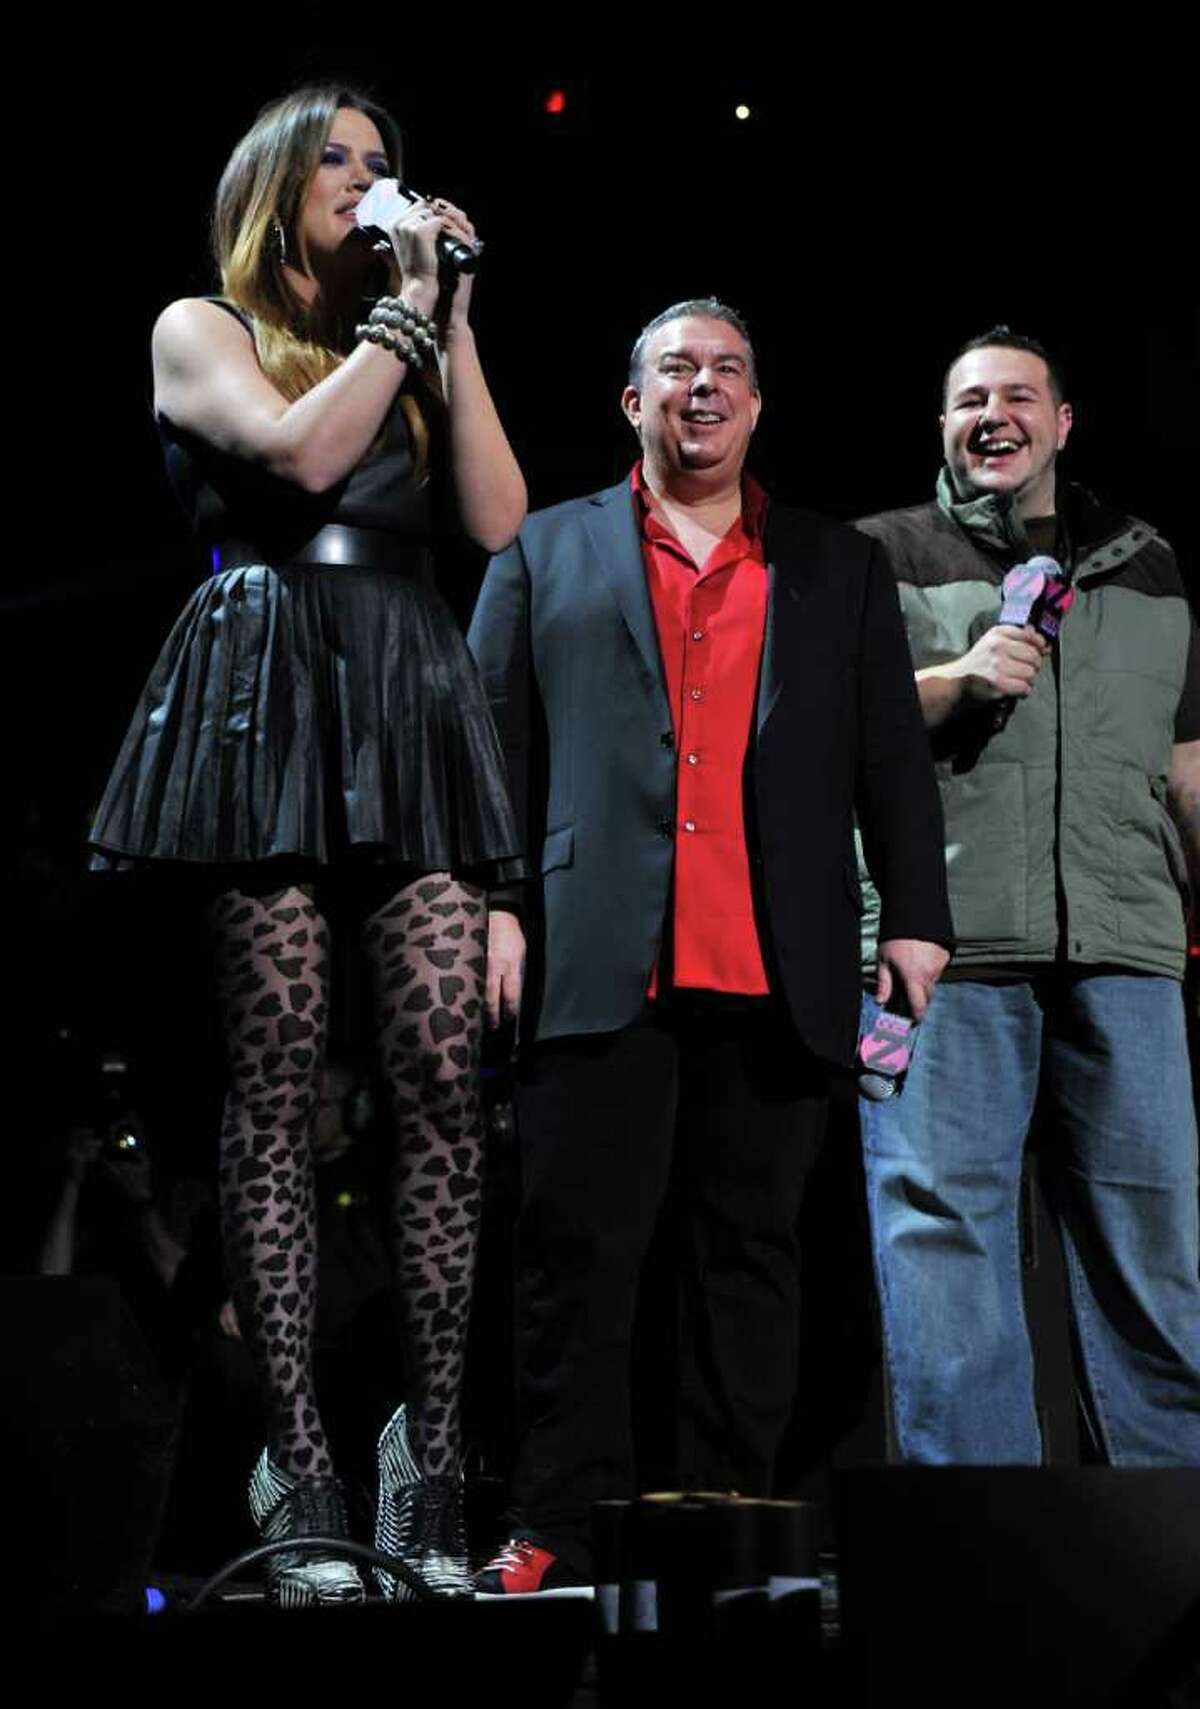 NEW YORK, NY - DECEMBER 09: Khloe Kardashian, Elvis Duran and Mo' Bounce speak onstage during Z100's Jingle Ball 2011, presented by Aeropostale at Madison Square Garden on December 9, 2011 in New York City. (Photo by Stephen Lovekin/Getty Images)